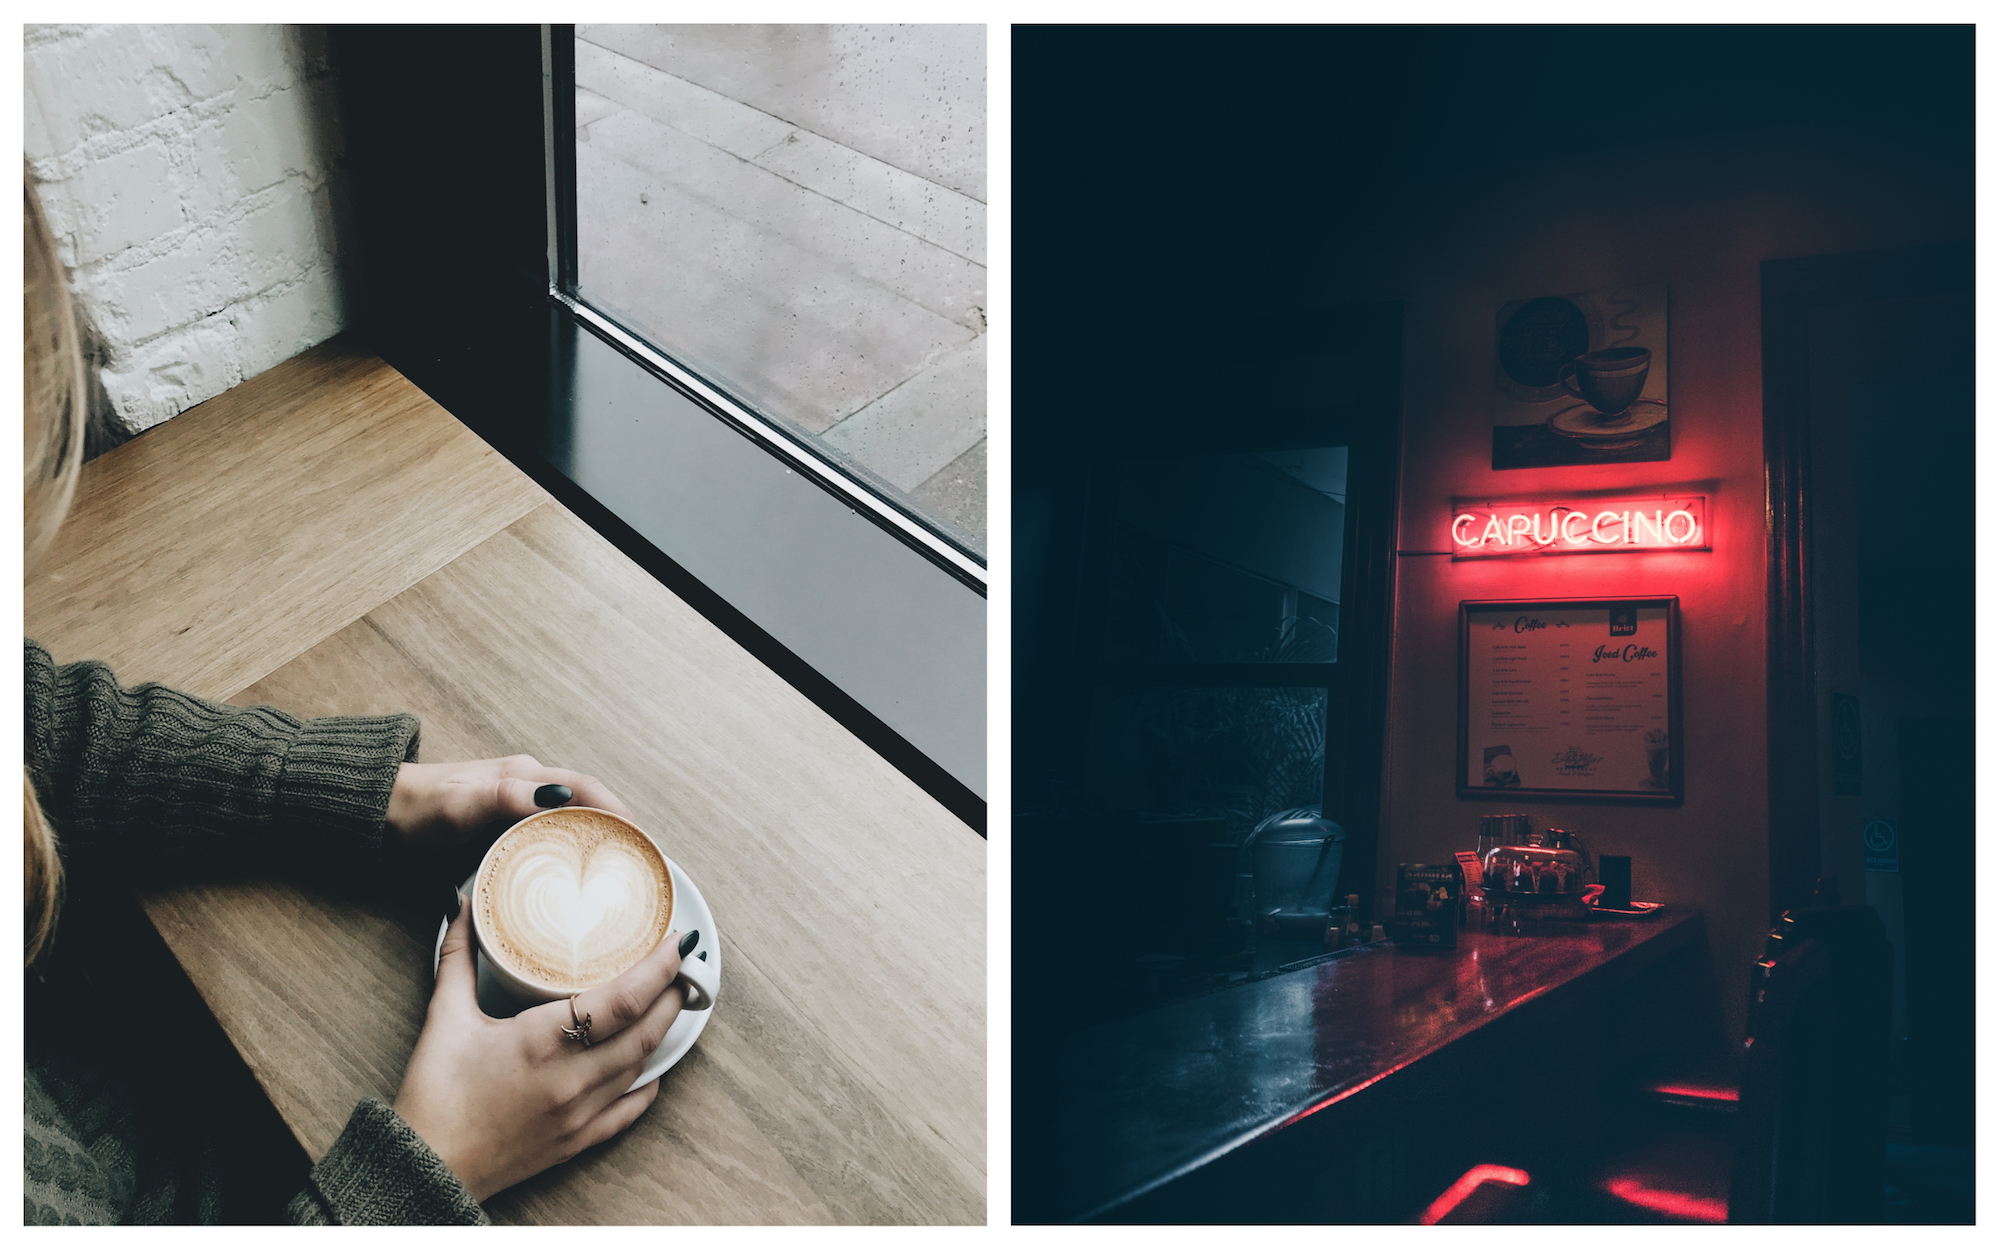 Paris coffee culture is slowly expanding outside of traditional cafes and into more American-style coffee shops (left) sometimes with design features like neon-lit signs inside that say things like 'Capuccino' (right).